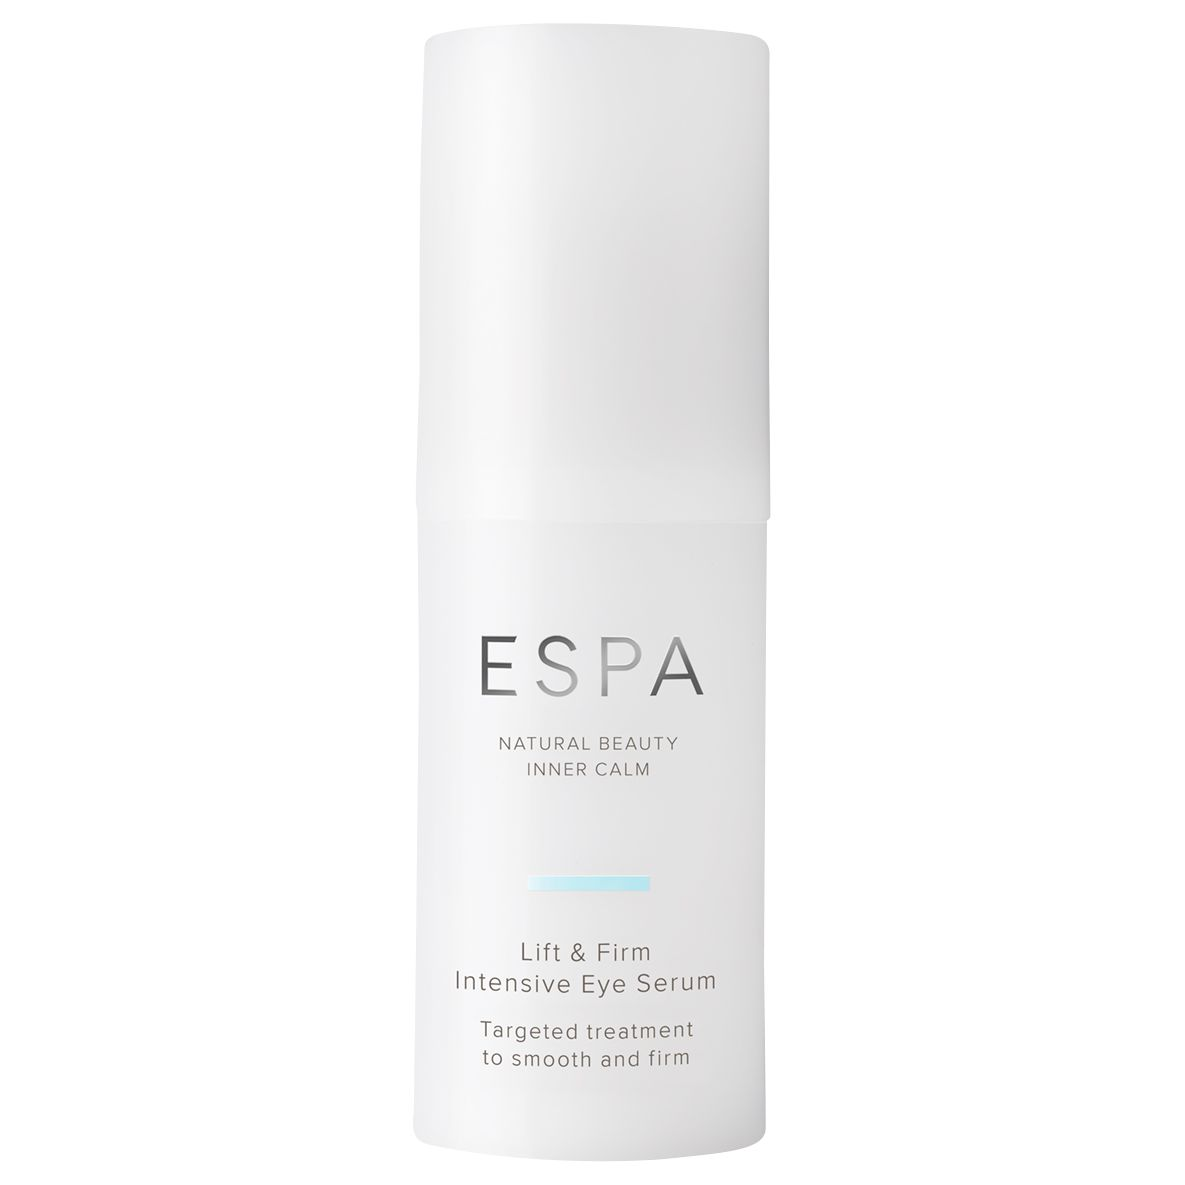 ESPA ESPA Lift & Firm Intensive Eye Serum, 15ml